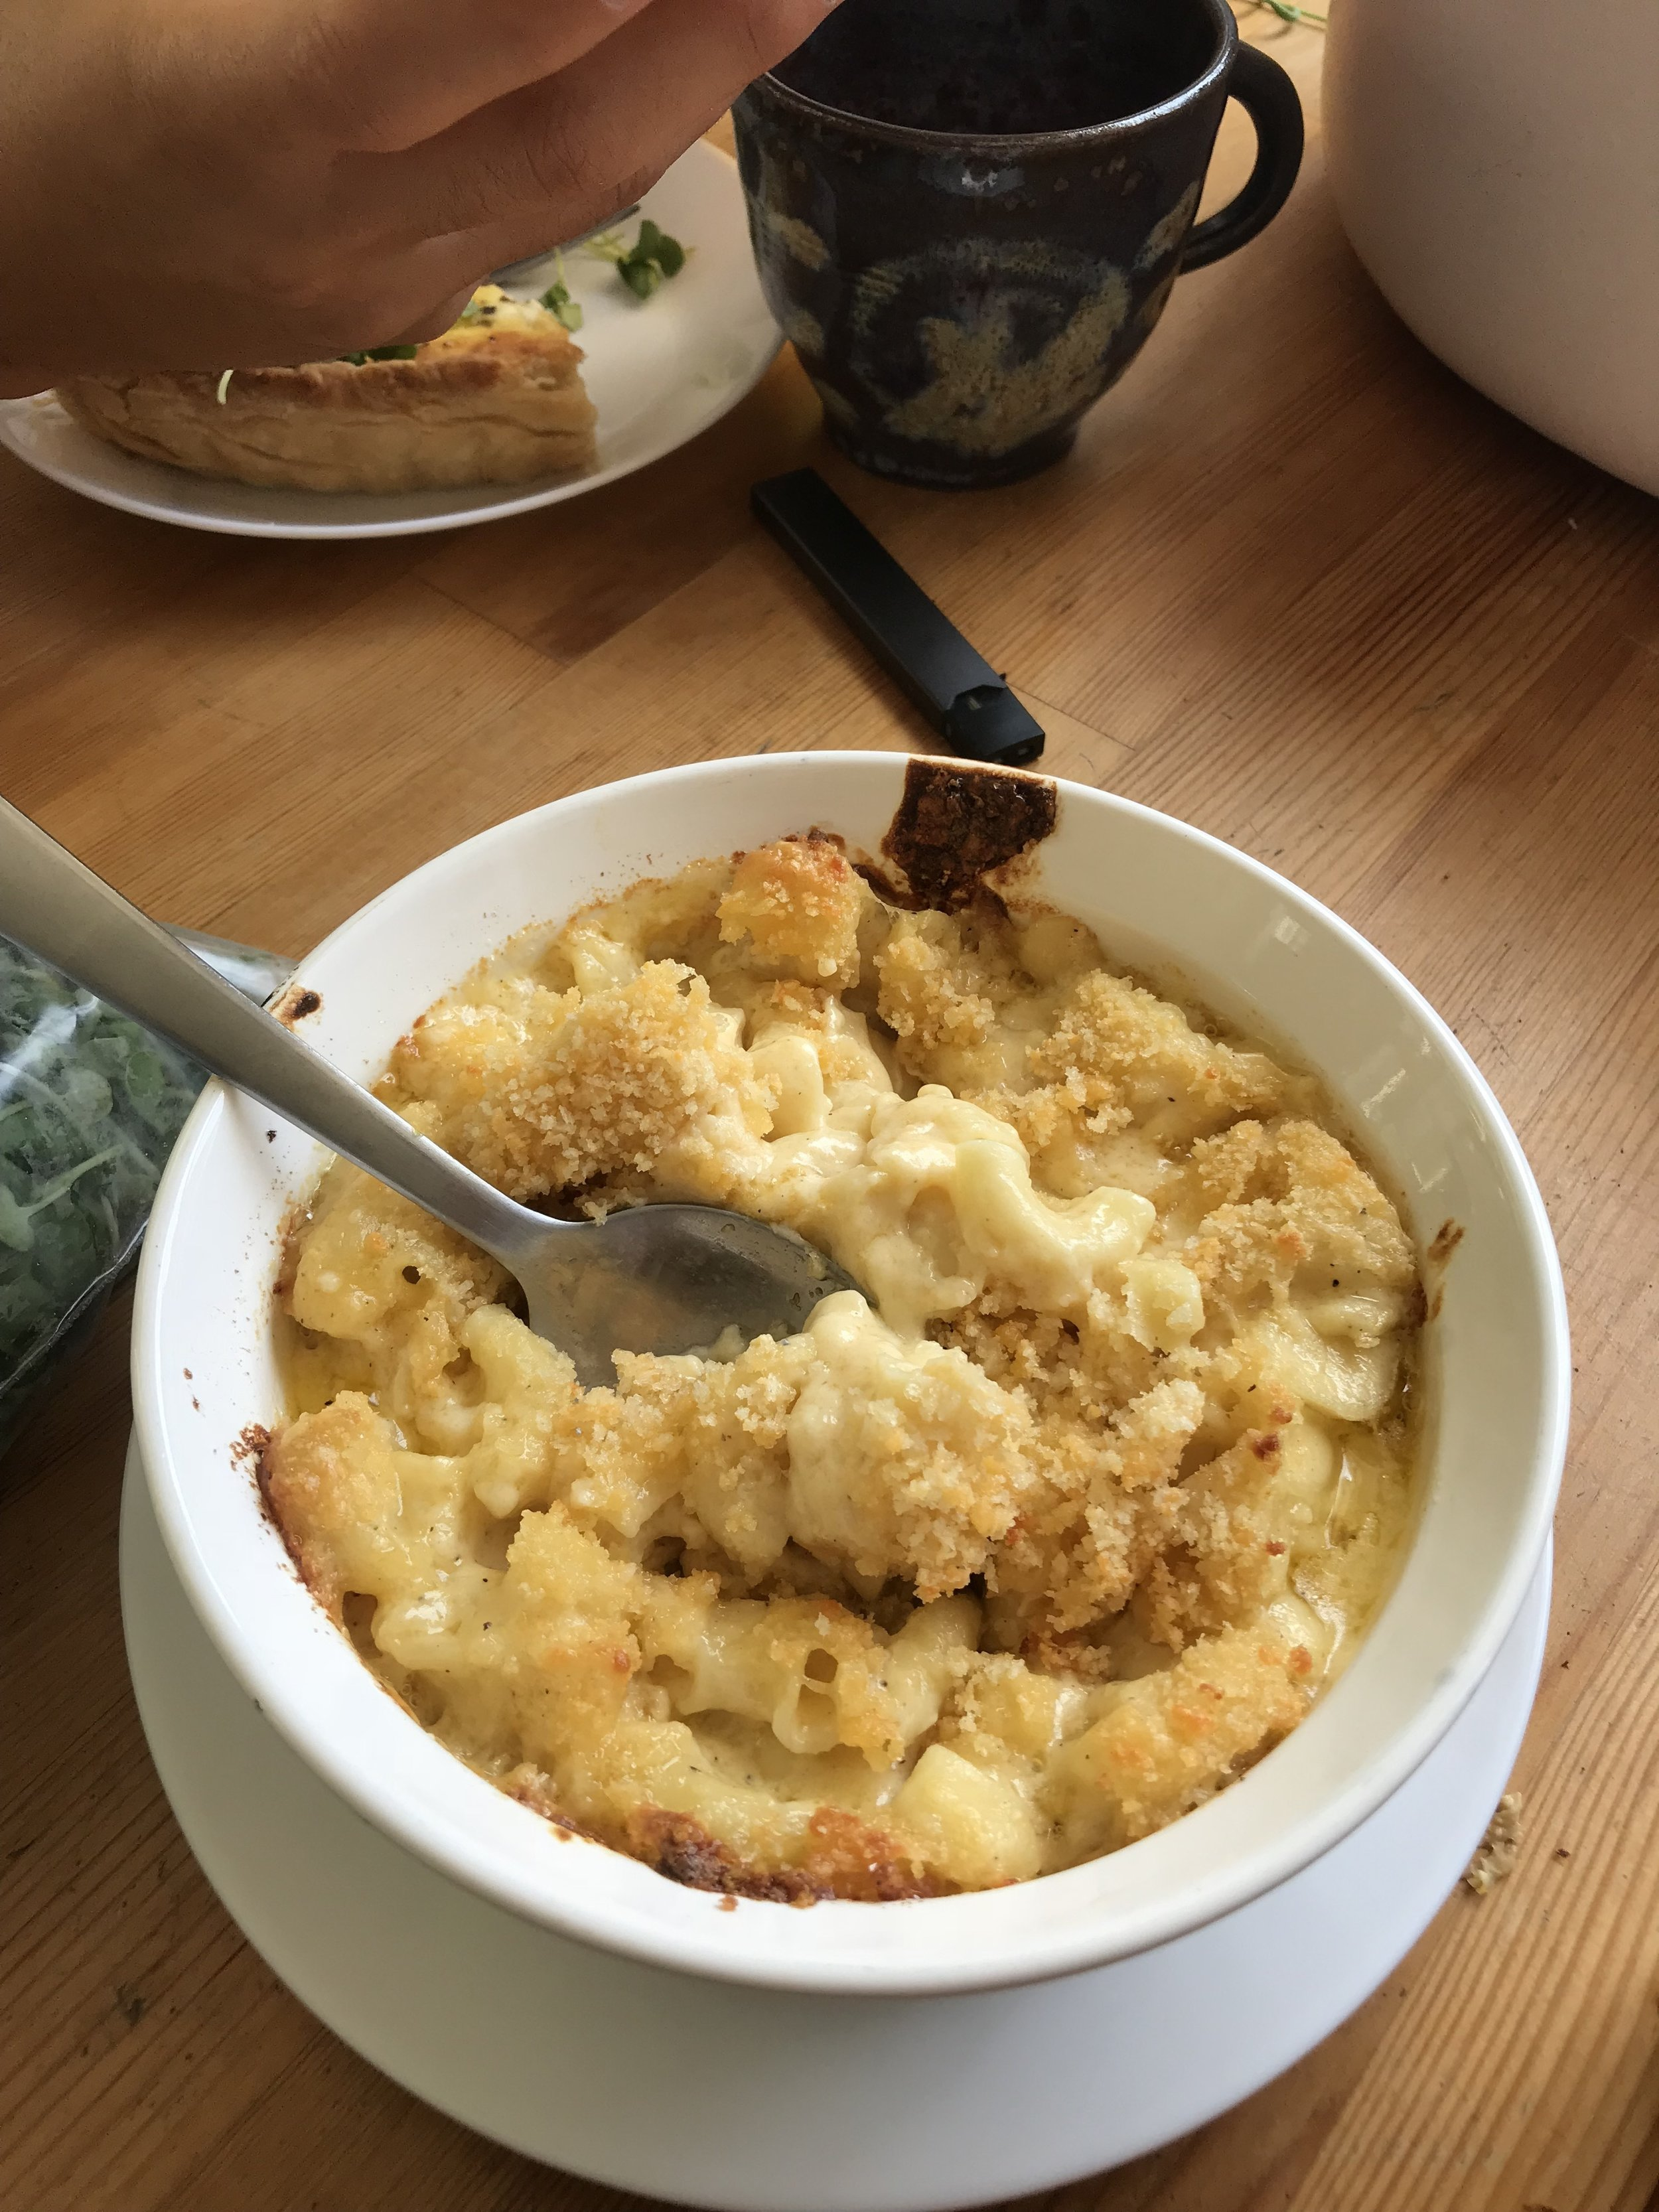 Mac and cheese with toasted breadcrumbs.